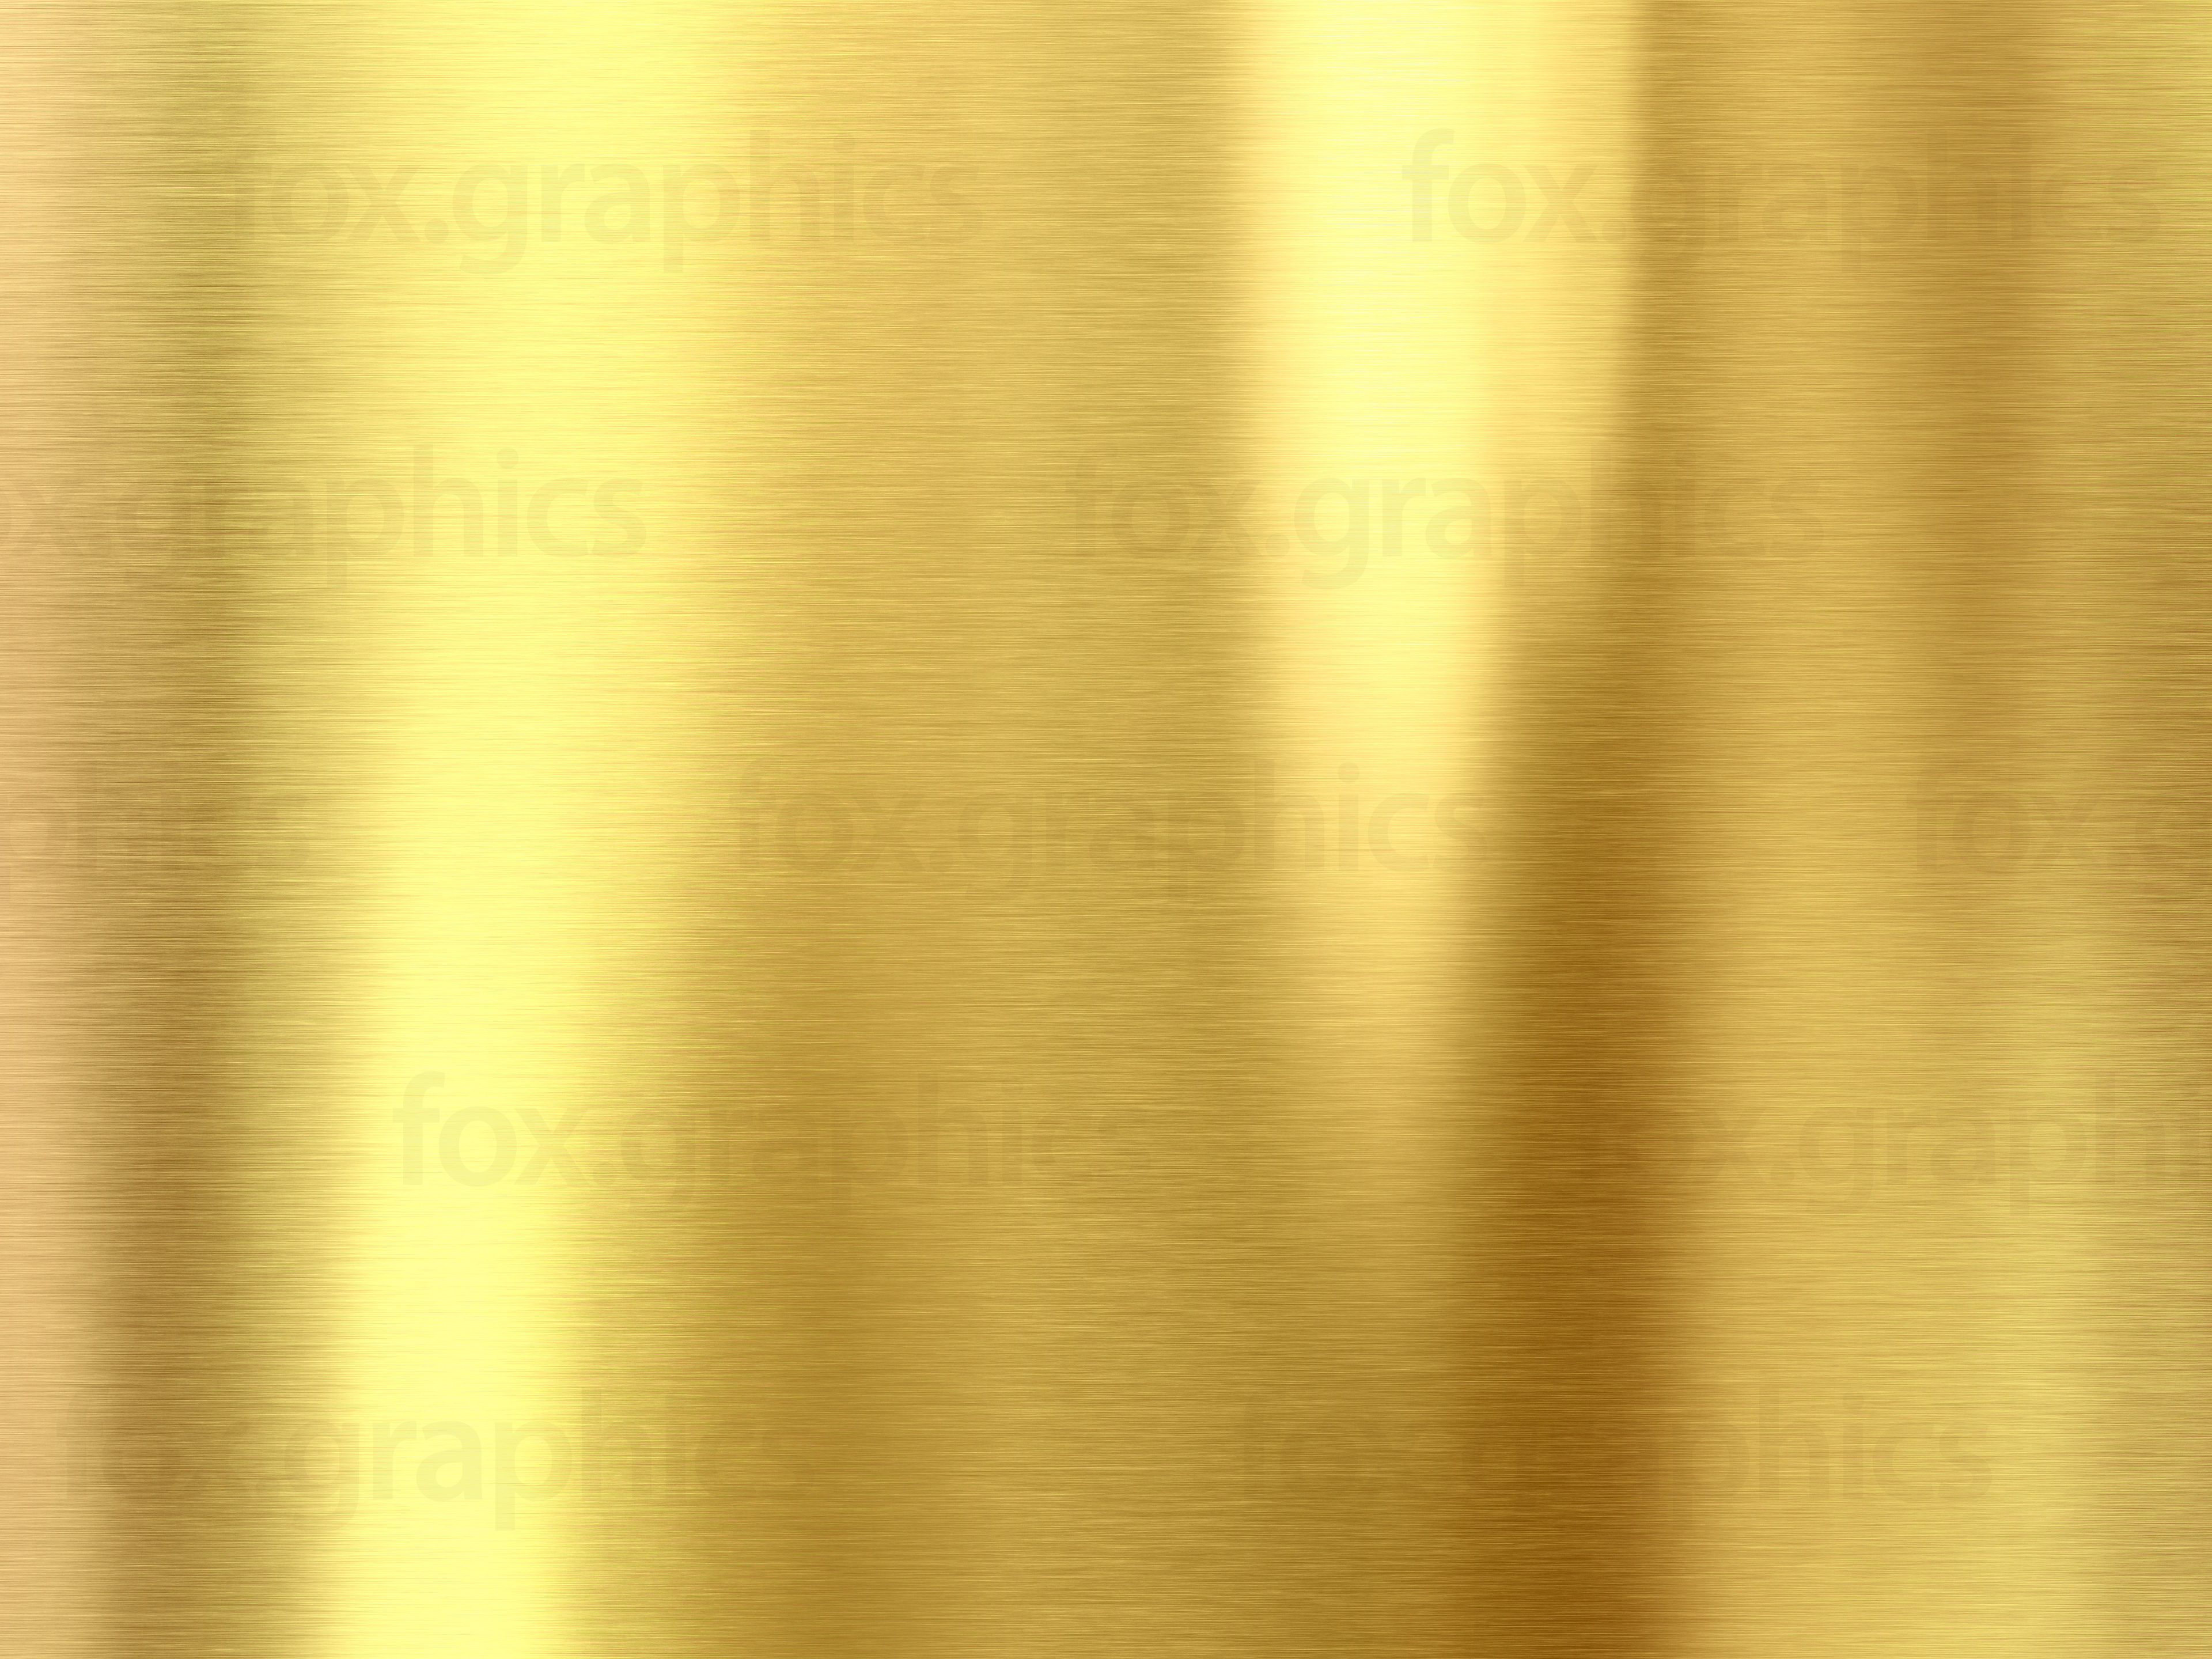 Shiny gold background   Fox Graphics 3840x2880